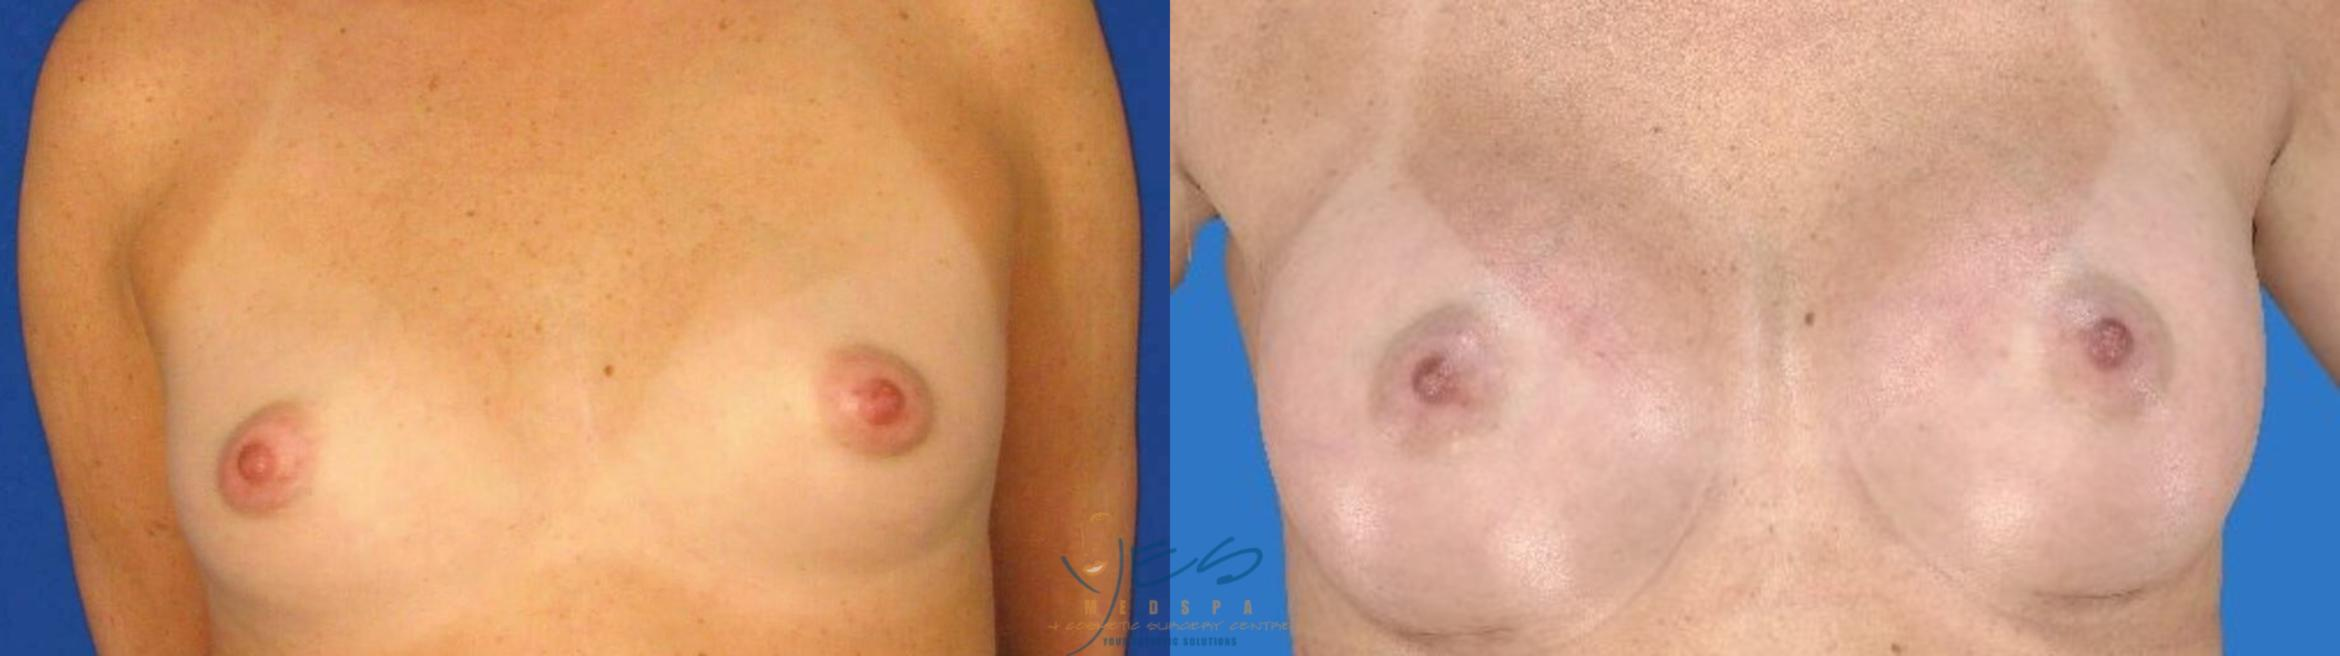 Breast Augmentation Case 100 Before & After Front | Vancouver, BC | YES Medspa & Cosmetic Surgery Centre